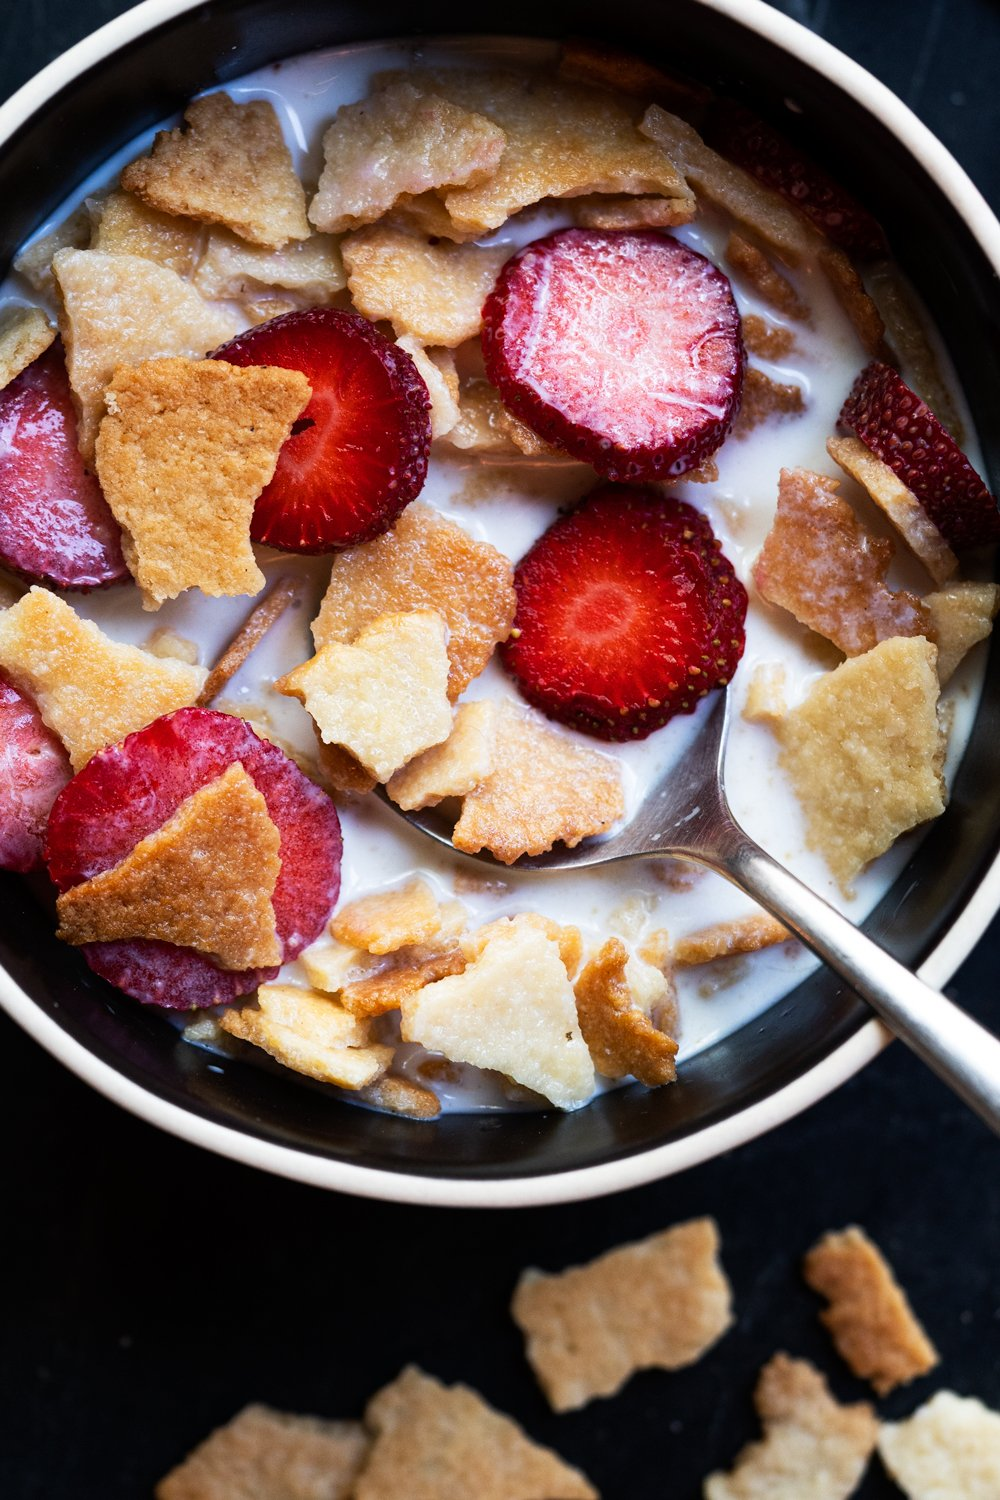 Keto Frosted Flakes cereal with sliced strawberries and almond milk in a black bowl